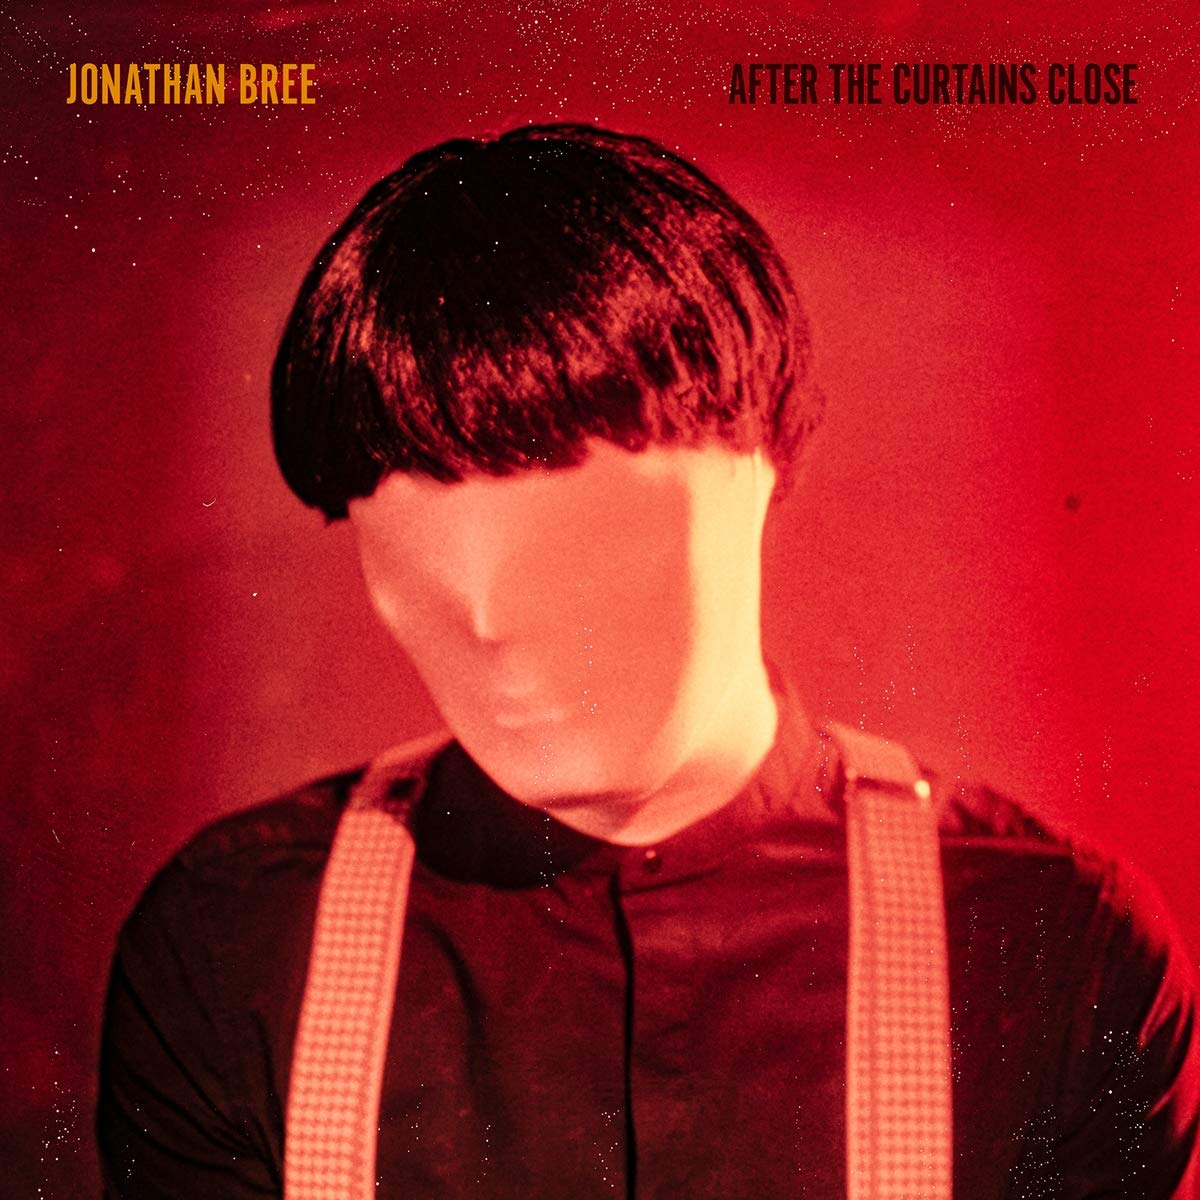 12 - Jonathan Bree - As the Curtains Close